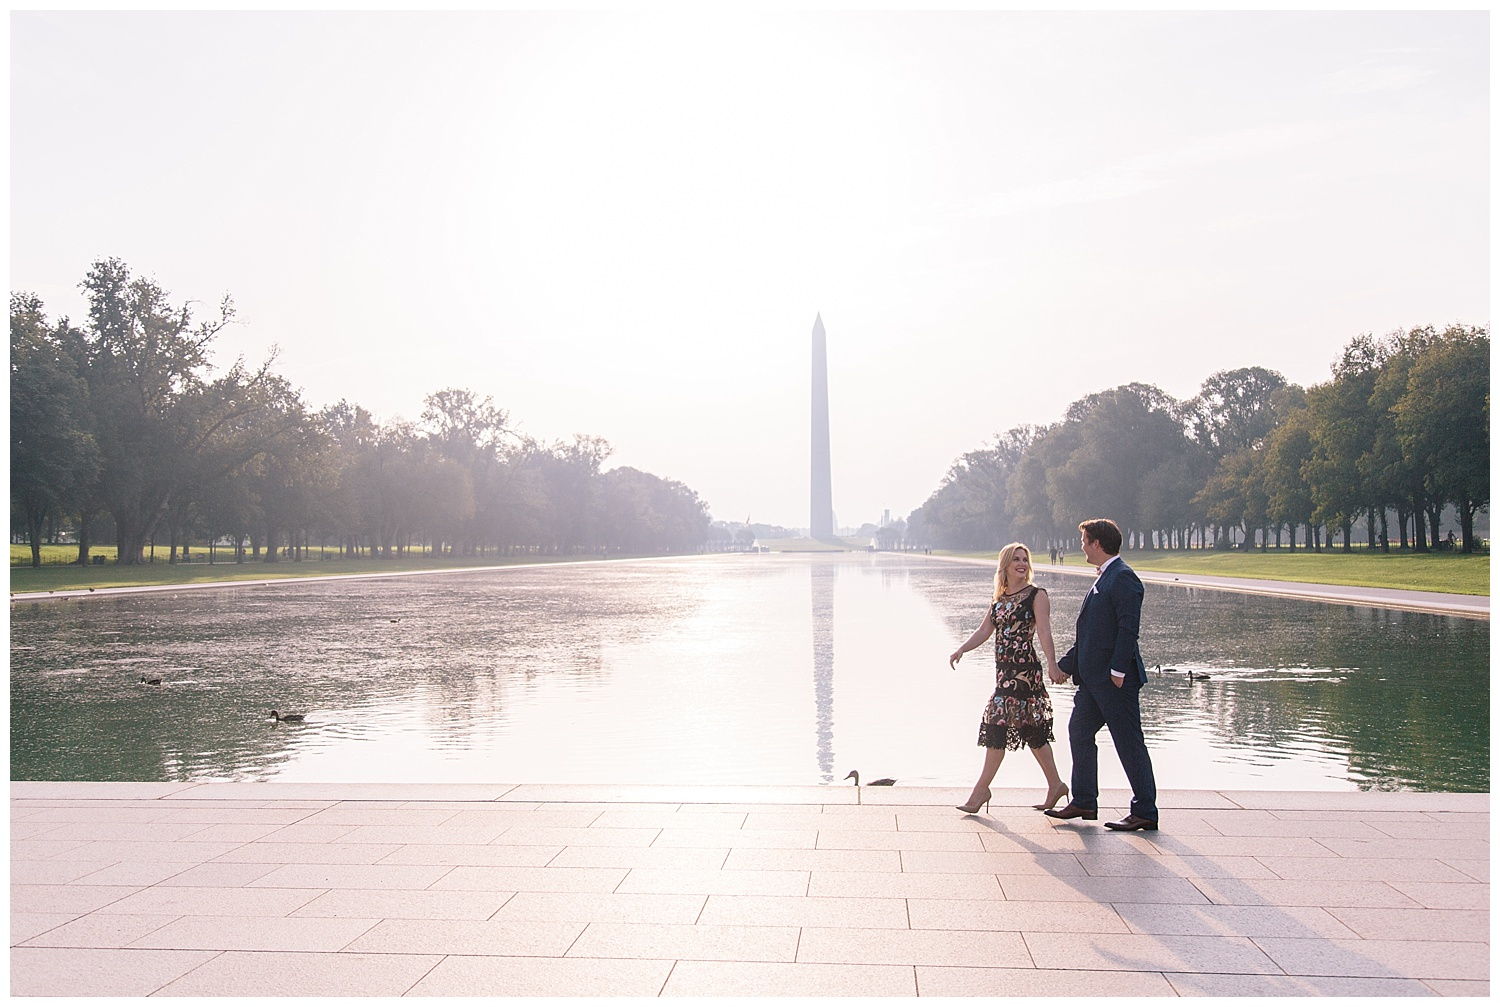 emily-belson-photography-washington-dc-engagement-emily-john-04.jpg